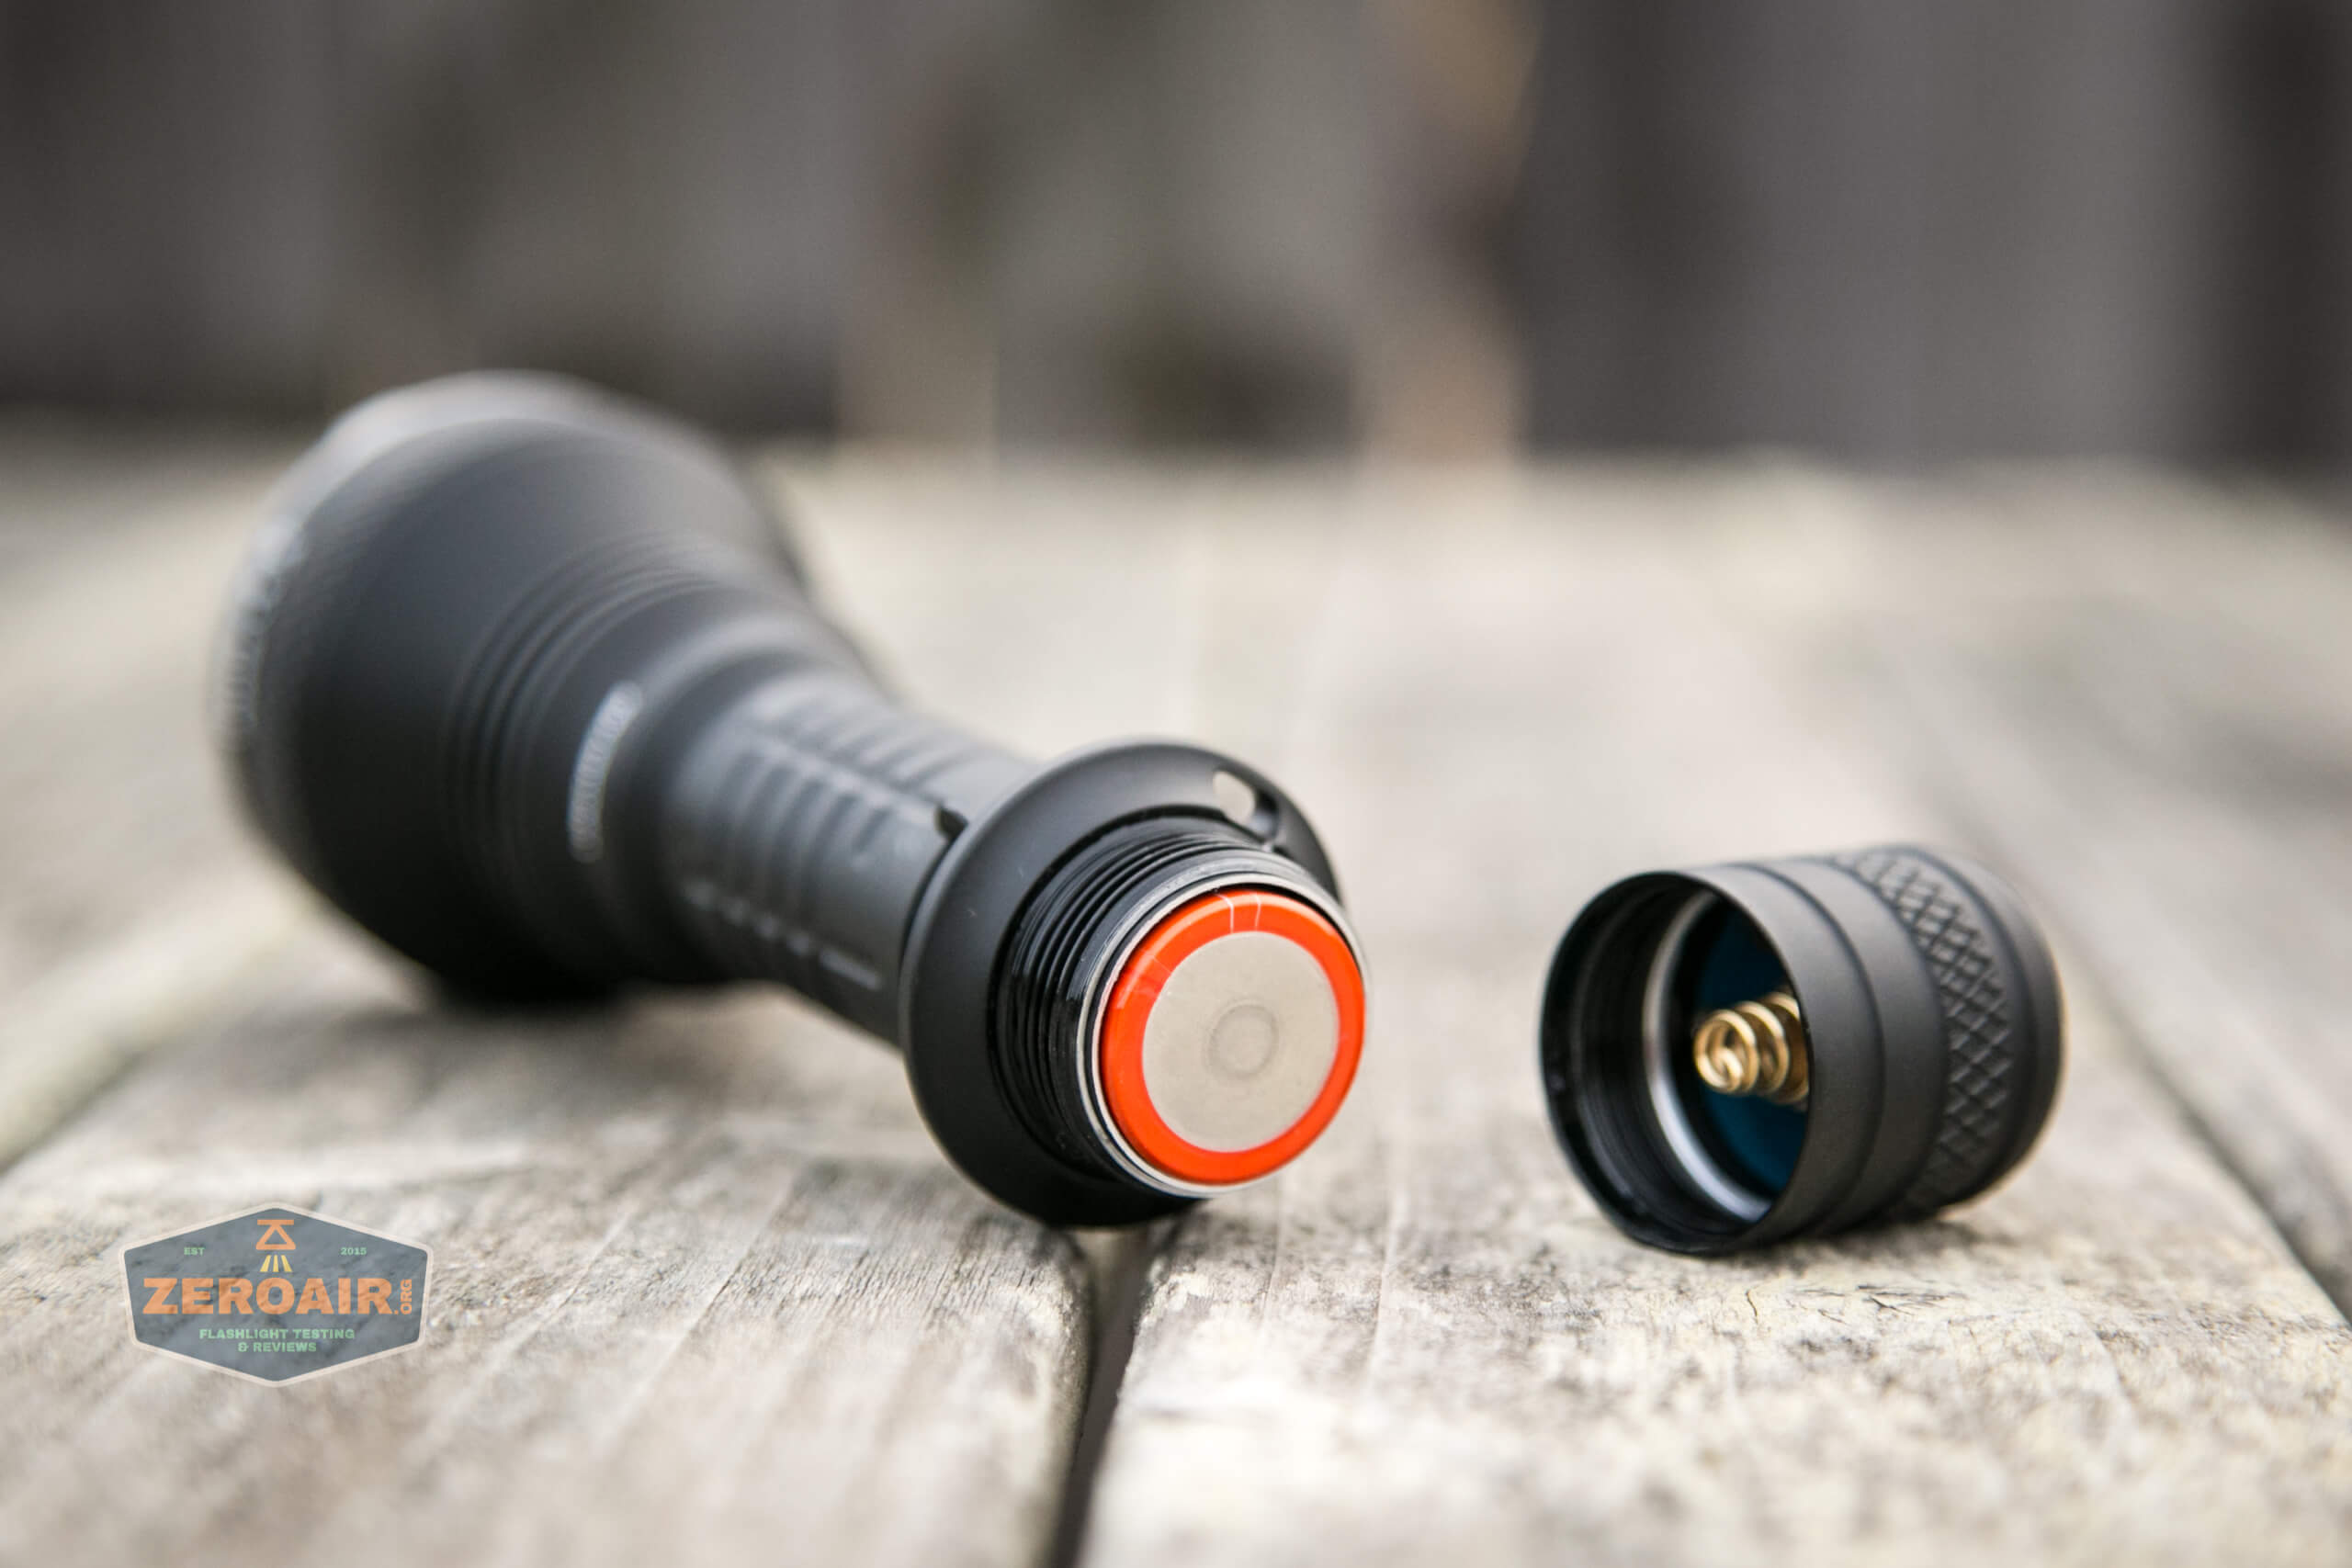 acebeam l35 flashlight included 21700 installed